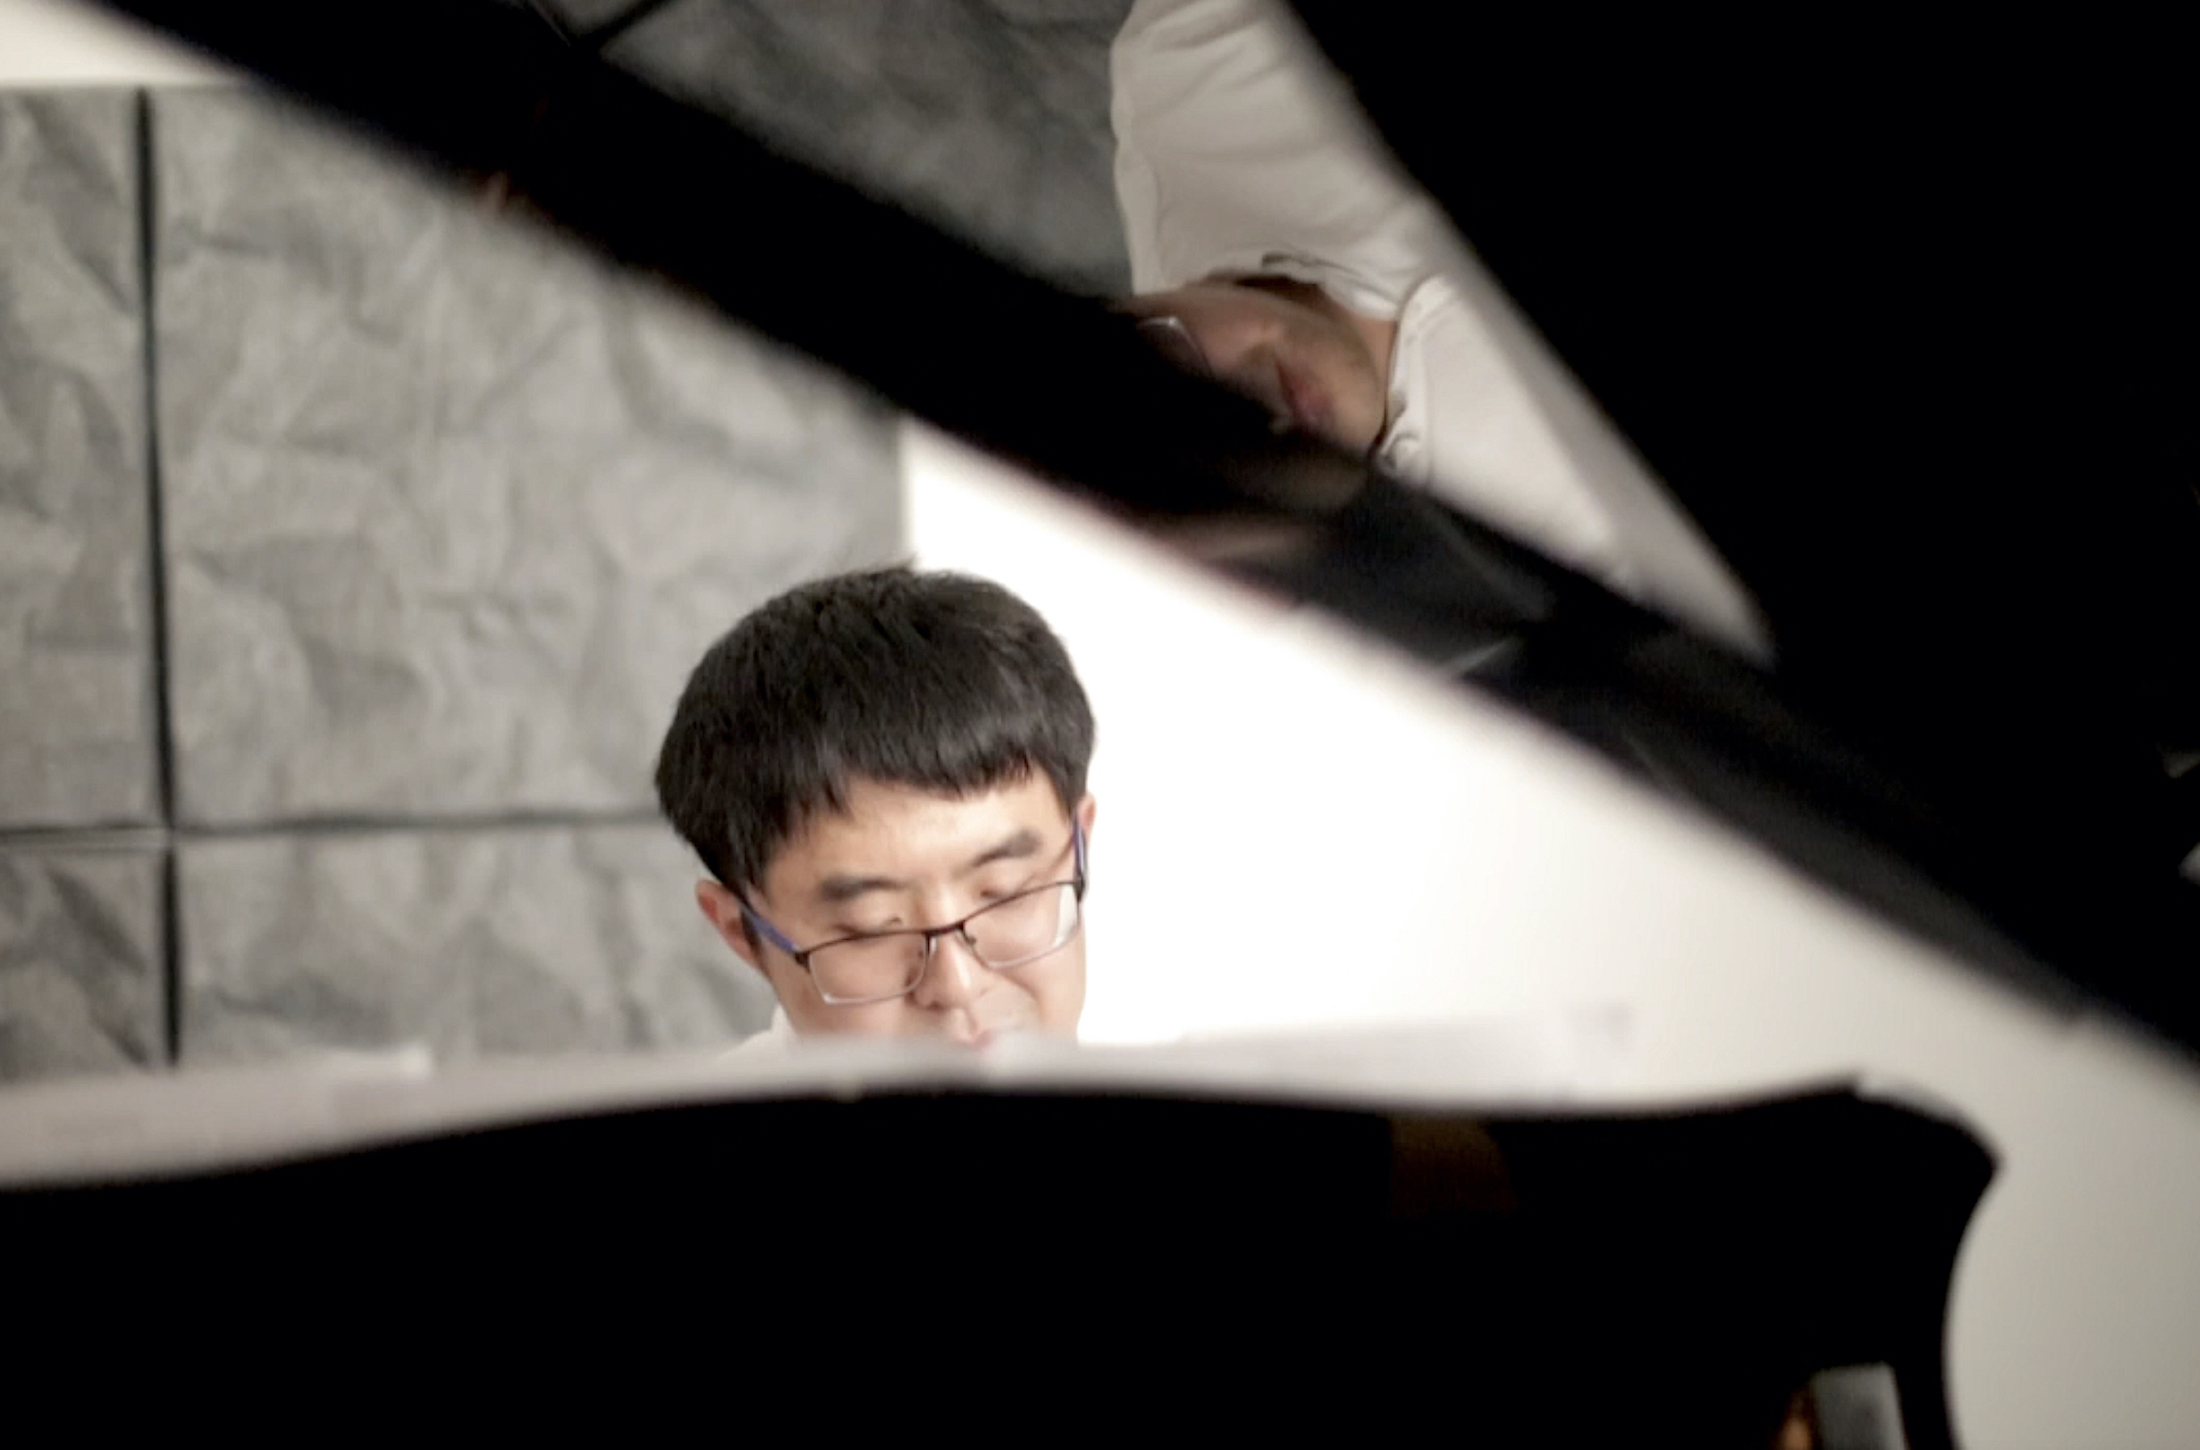 """Yi Yin, 37, plays the piano in a music studio in Palo Alto, on Monday, October 14, 2019. Yin composes the piano piece, which he names after the protest, """"September 26th Piano Sonata"""". (Qian Chen/Peninsula Press)"""